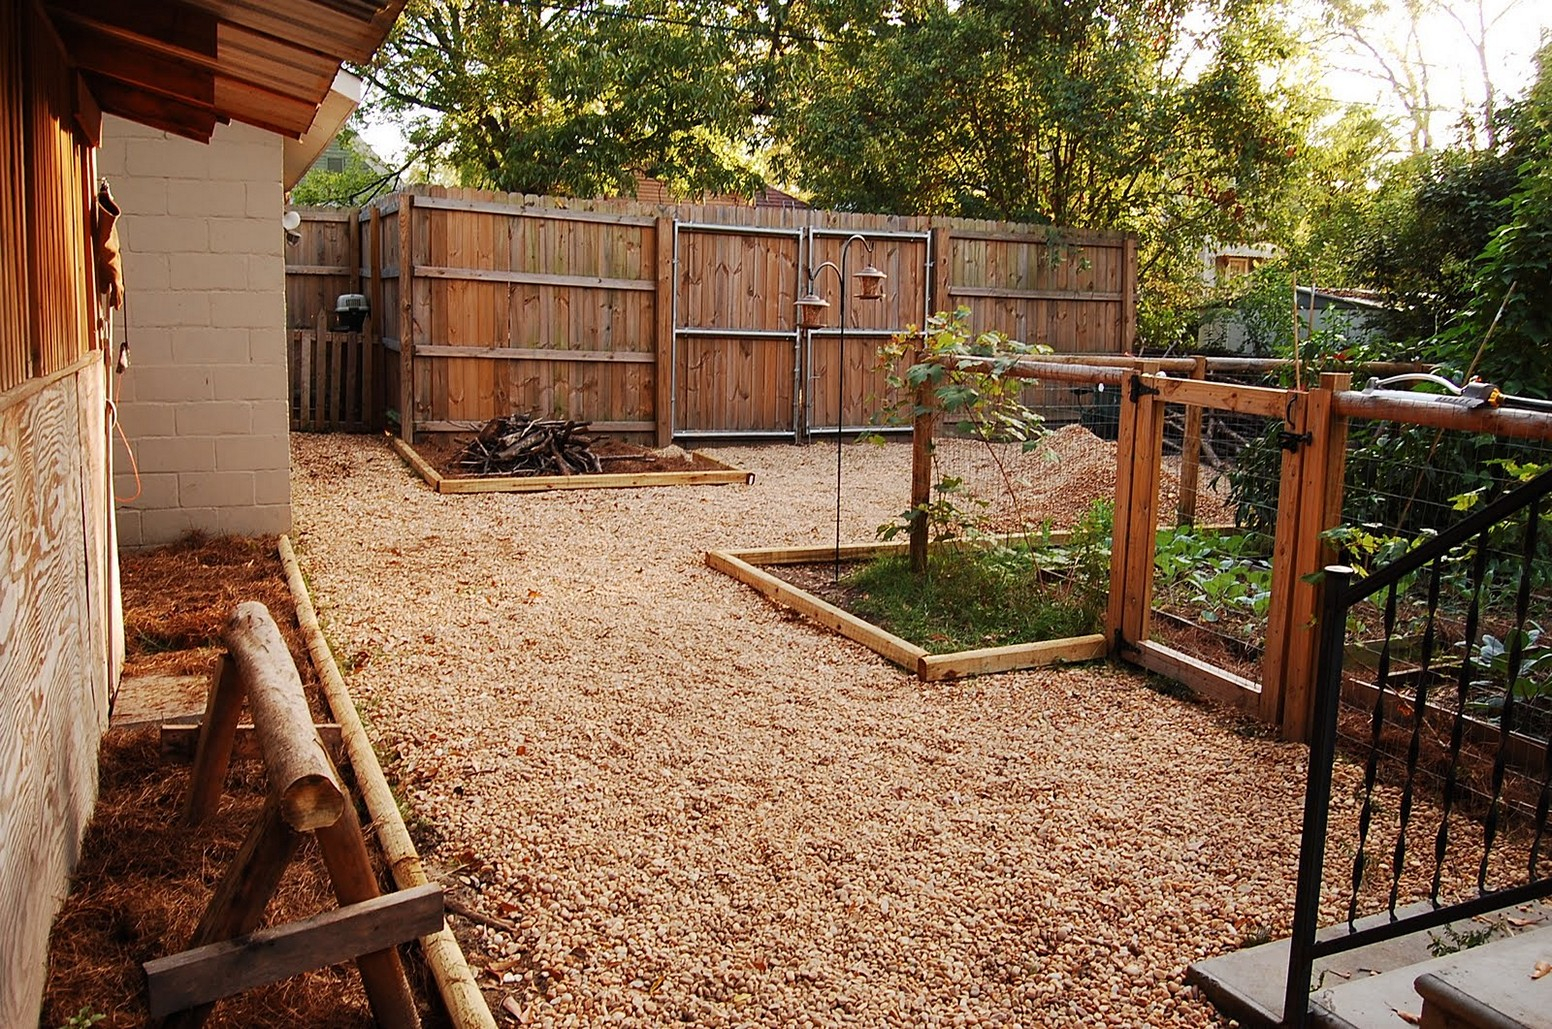 Backyard Fence Ideas Cheap All Home Decor Best Patio Backyard within 13 Some of the Coolest Ways How to Improve Small Backyard Ideas Cheap